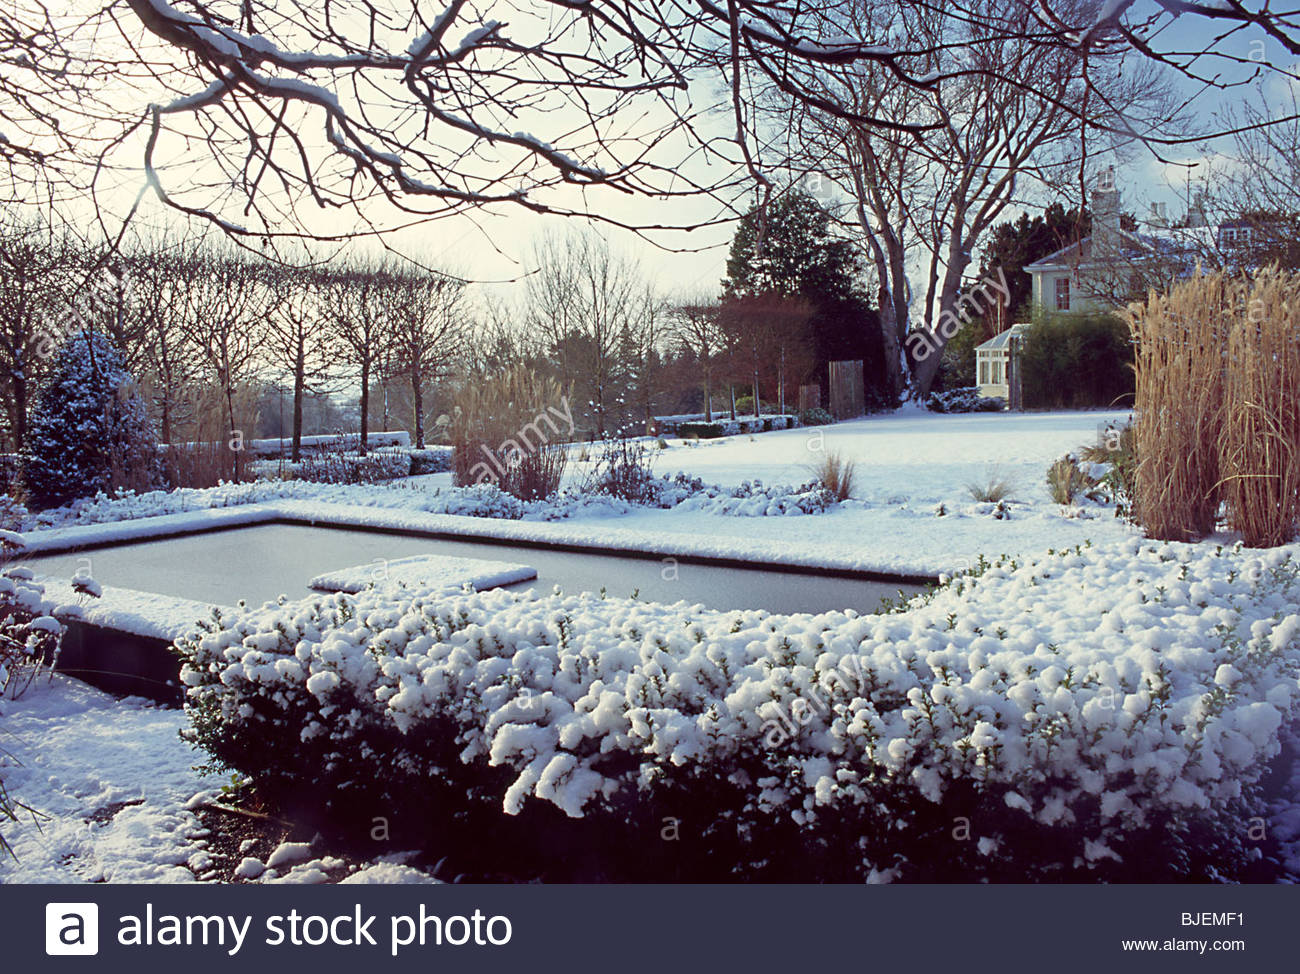 Pool Garten Winter Fiona Lawrenson Garden Winter Wit Stock Photos Fiona Lawrenson